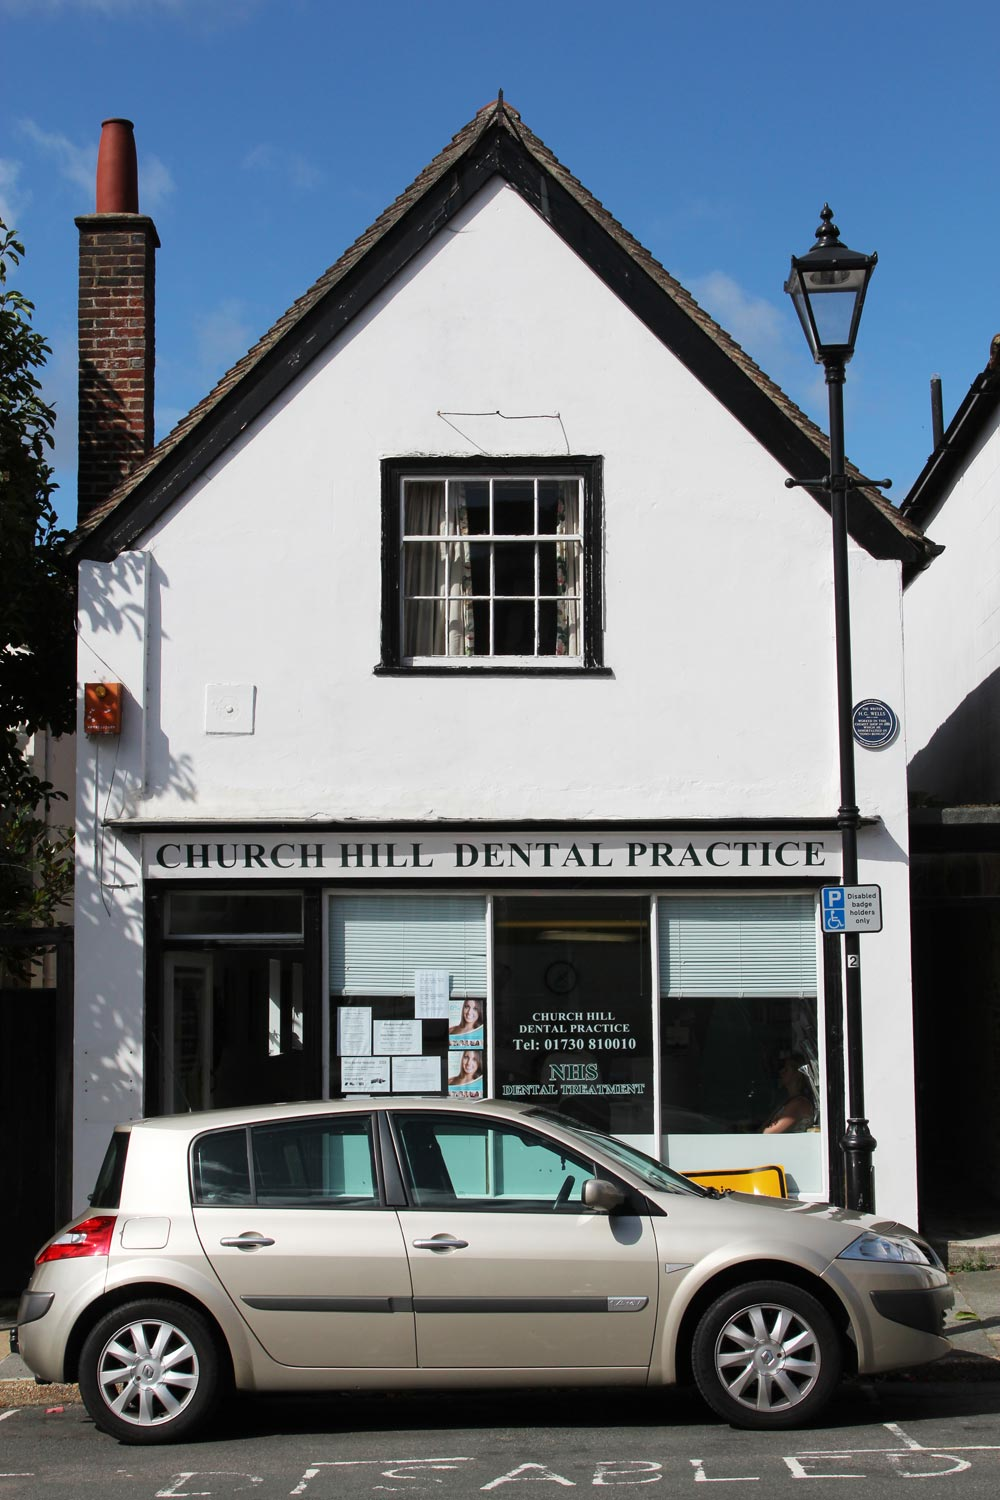 Old Chemist Shop, where H.G. Wells was an apprentice, Church Hill, Midhurst